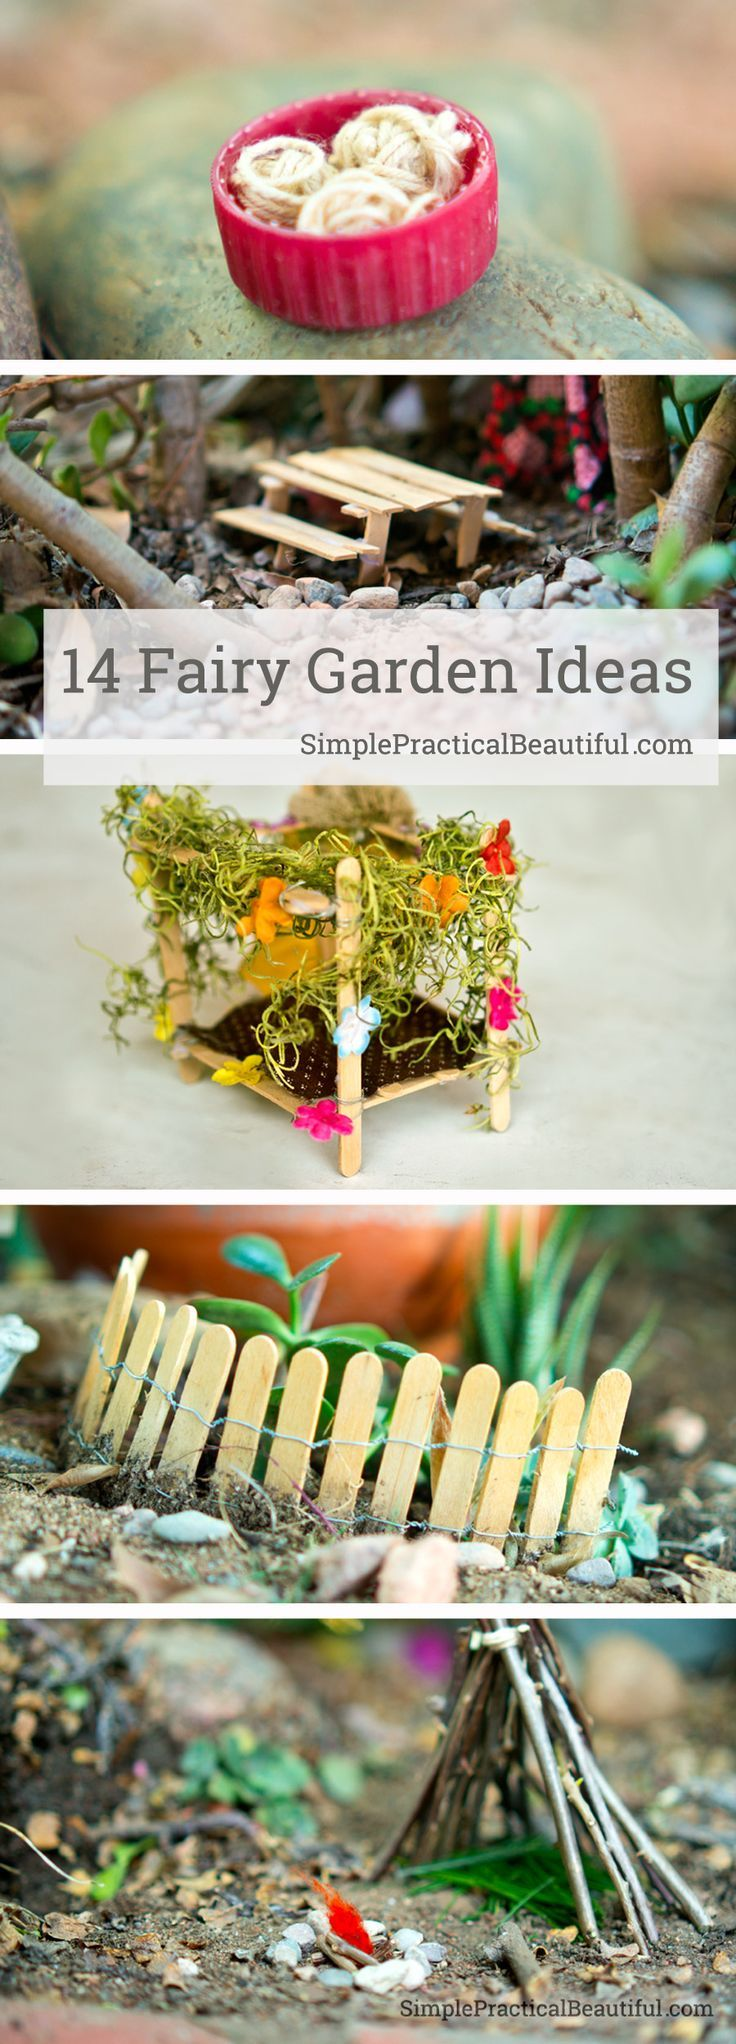 25 unique diy fairy garden ideas on pinterest fairies garden diy fairy house and mini fairy garden - Diy Fairy Garden Ideas